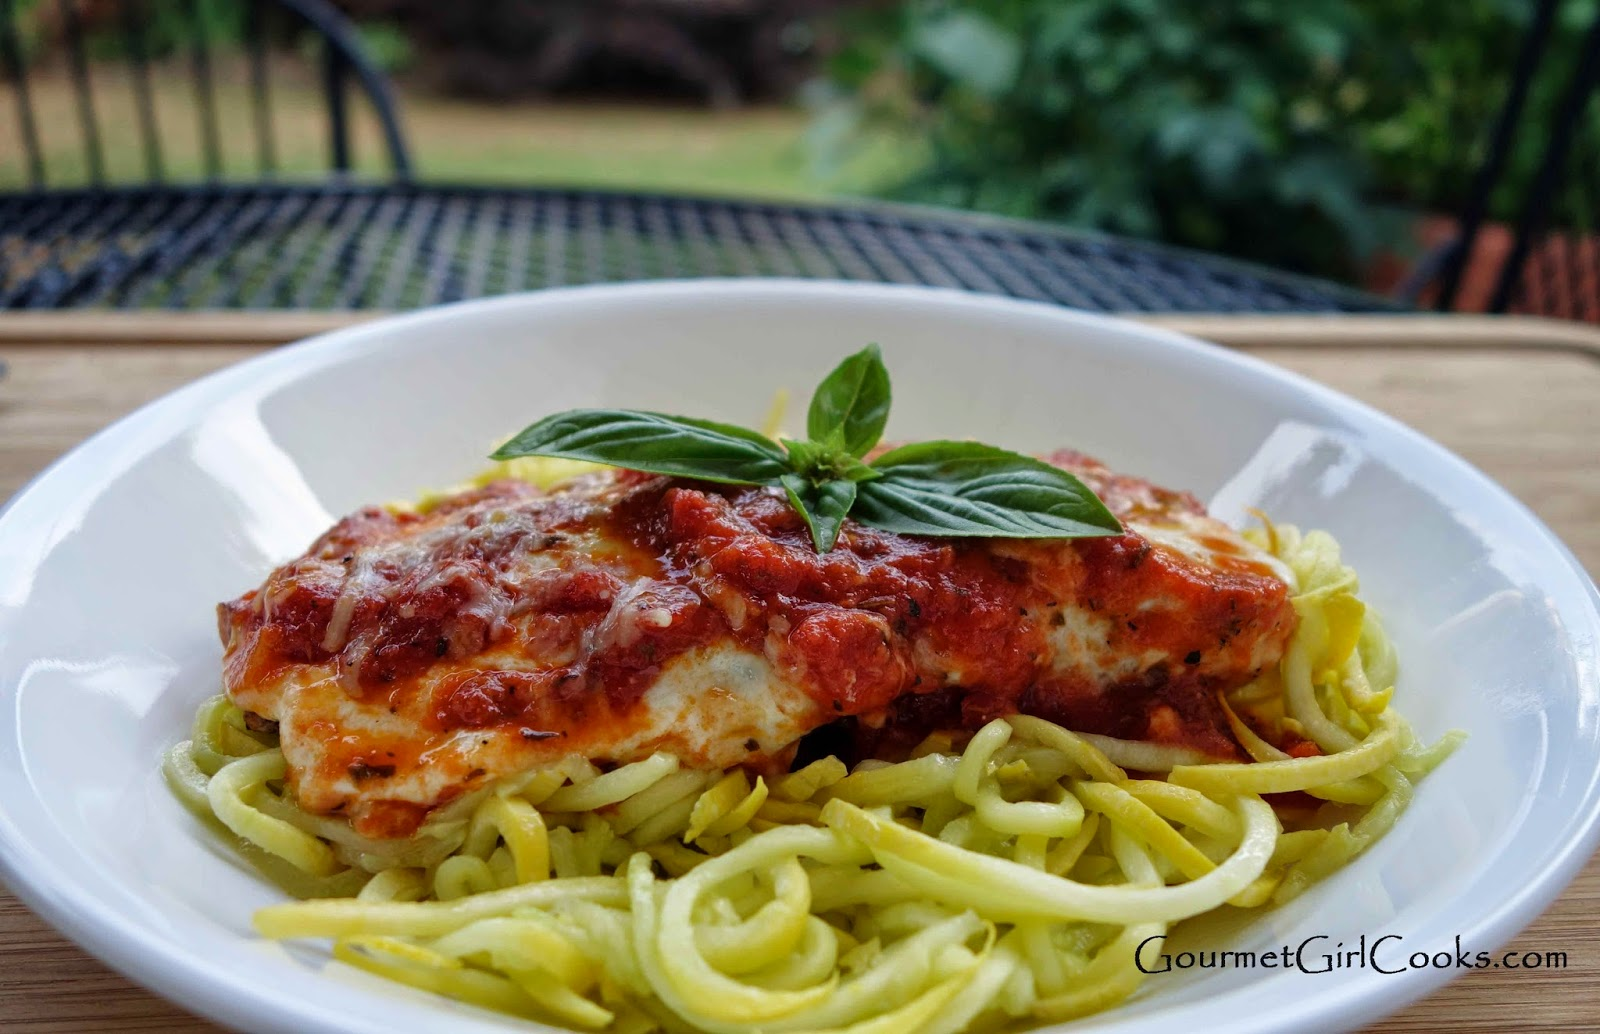 Gourmet Girl Cooks: Grilled Chicken Parmesan -- Low Carb, Quick, Fresh ...